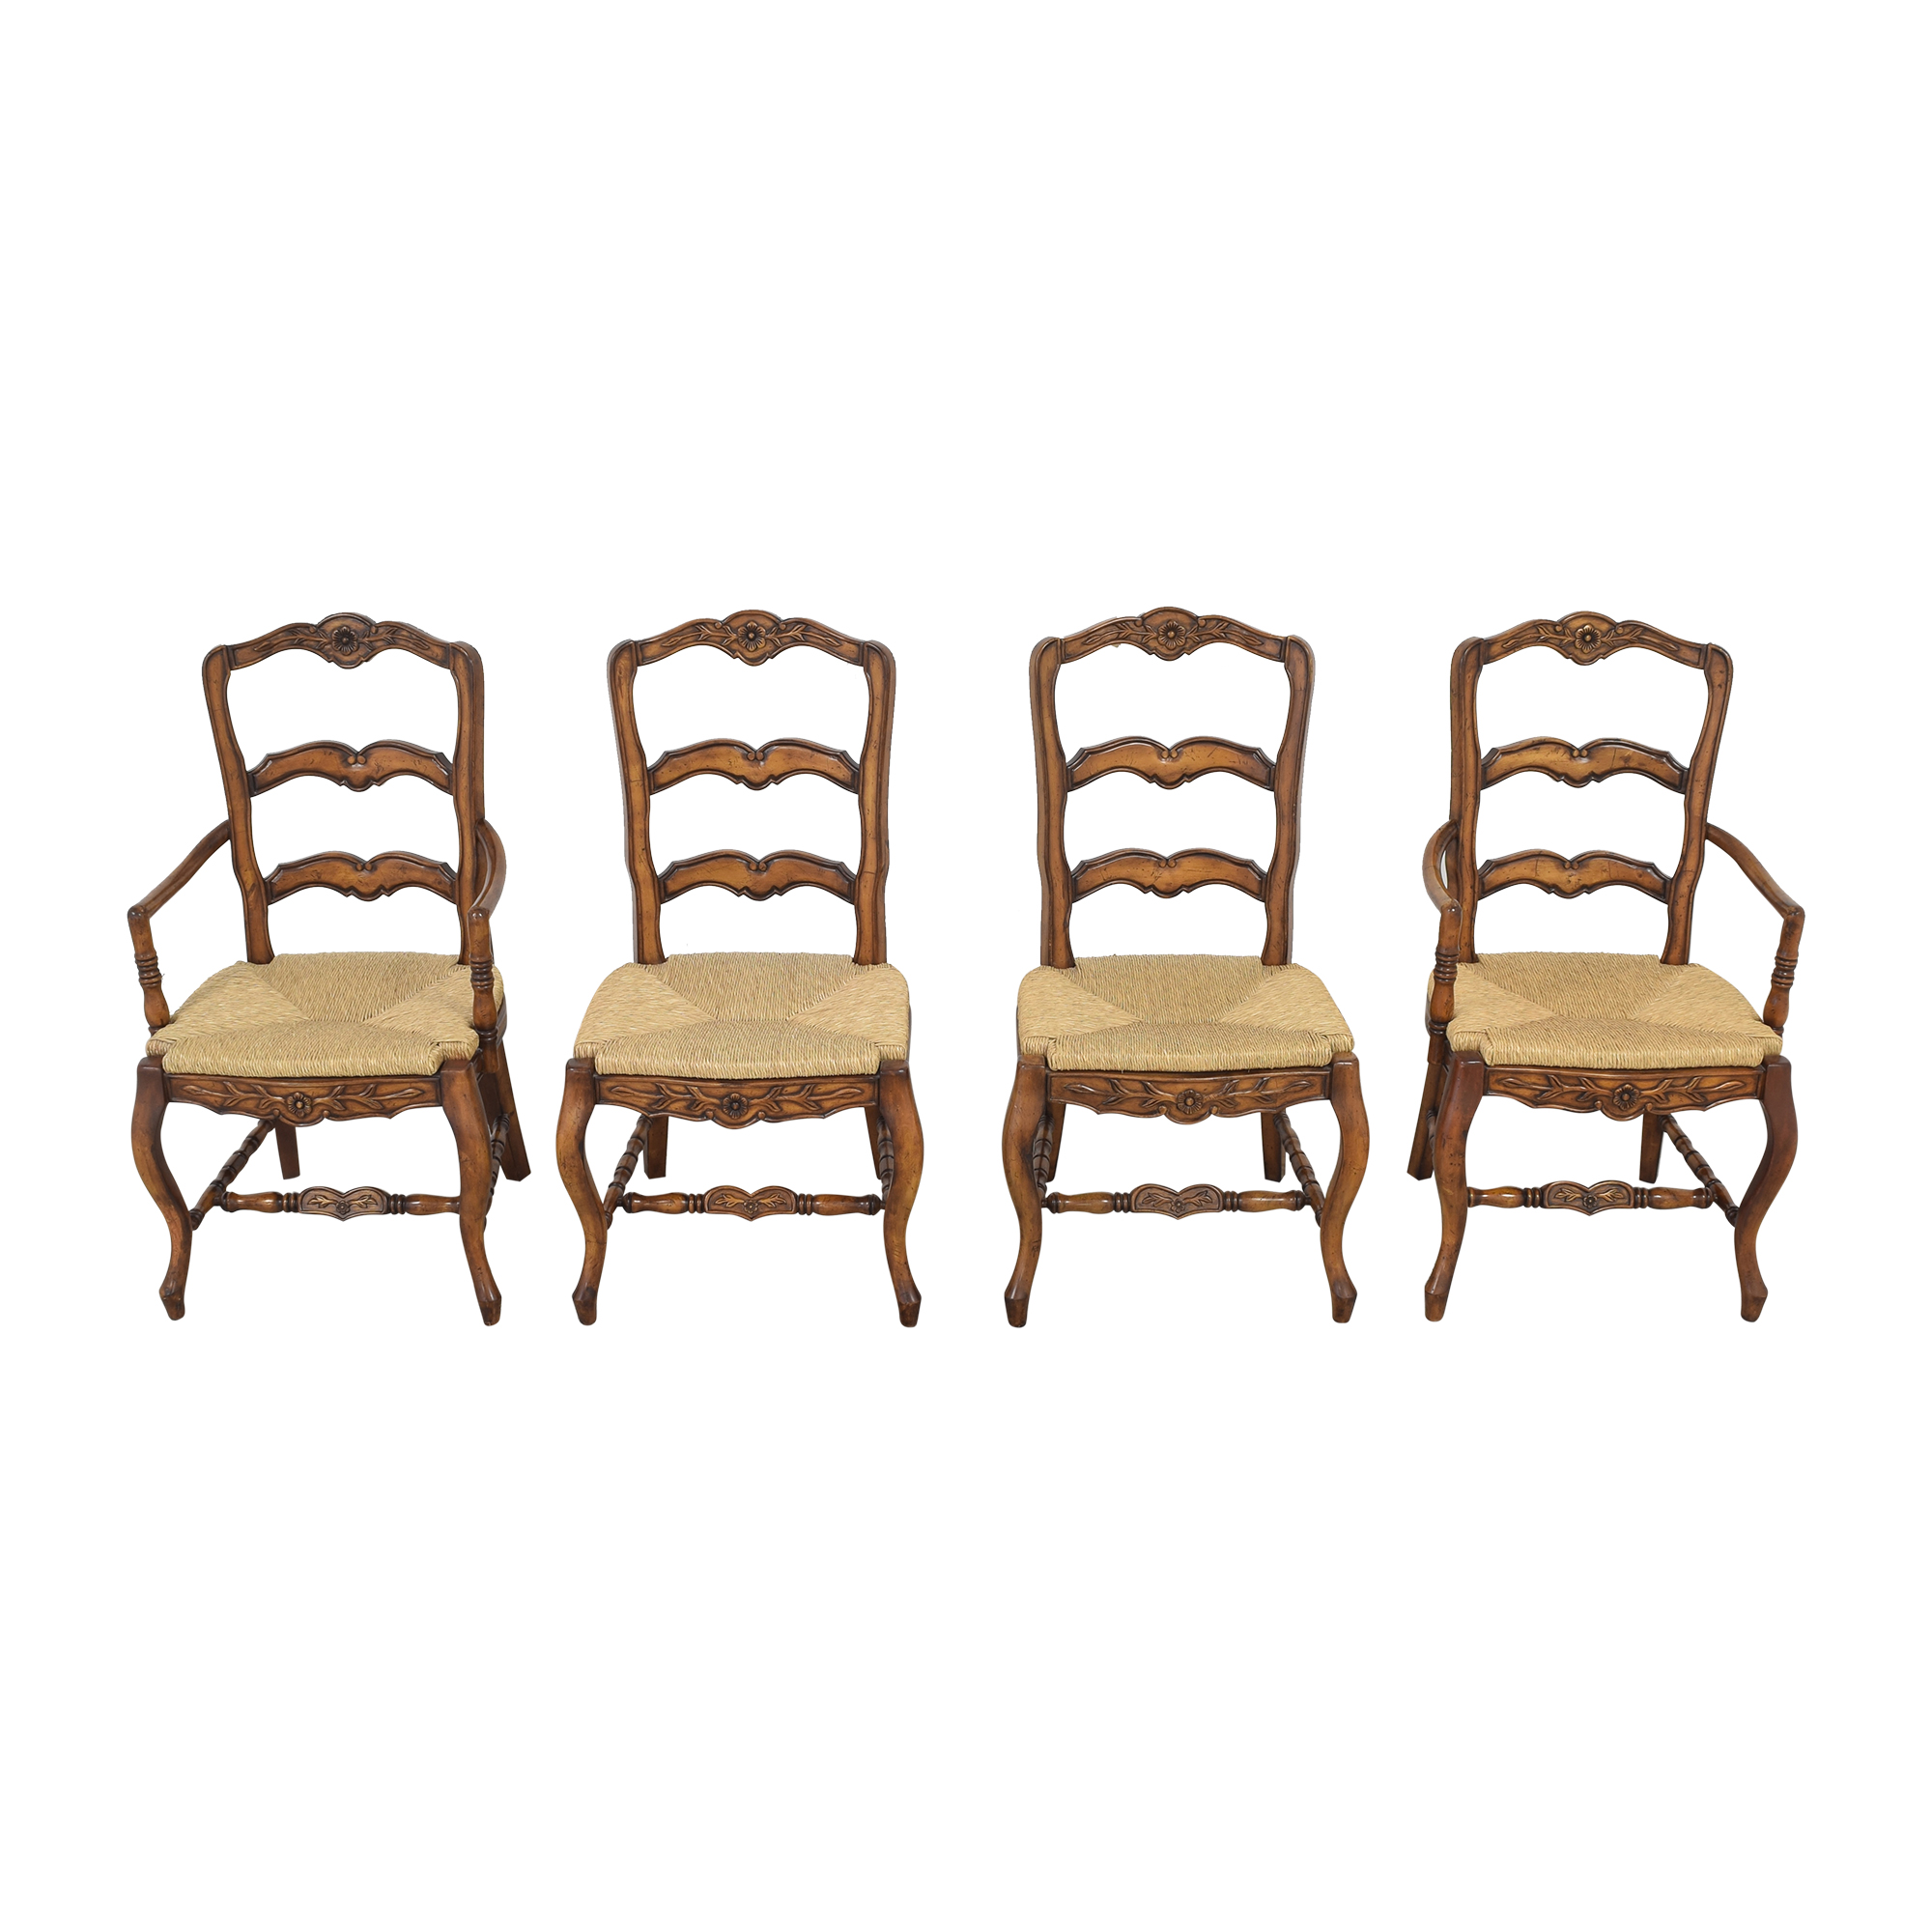 Artistica Artistica Cane Dining Chairs ct